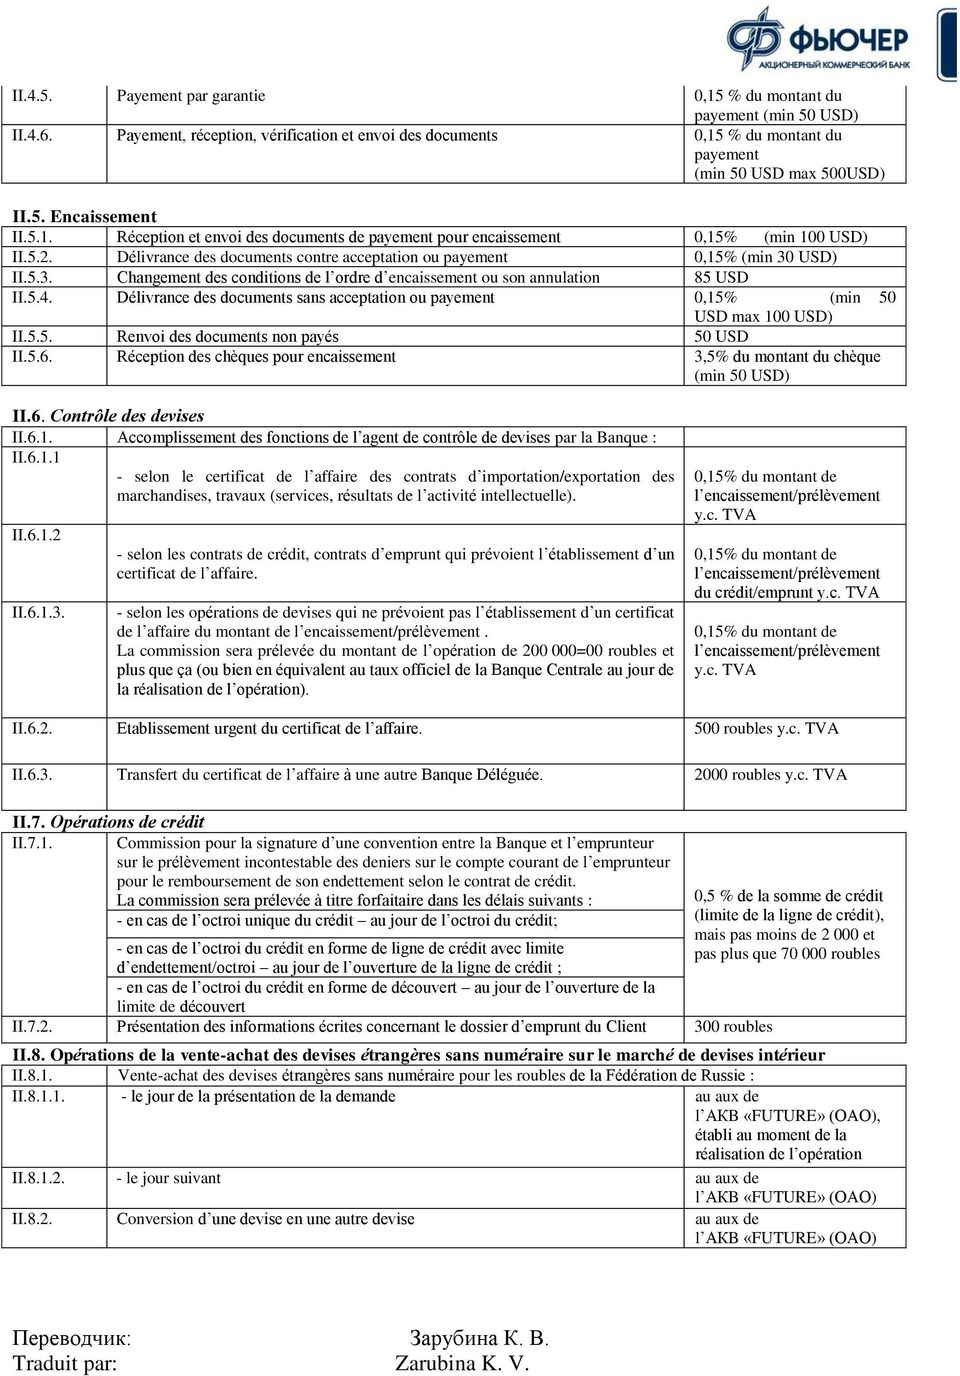 USD) II.5.3. Changement des conditions de l ordre d encaissement ou son annulation 85 USD II.5.4. Délivrance des documents sans acceptation ou payement 0,15% (min 50 USD max 100 USD) II.5.5. Renvoi des documents non payés 50 USD II.